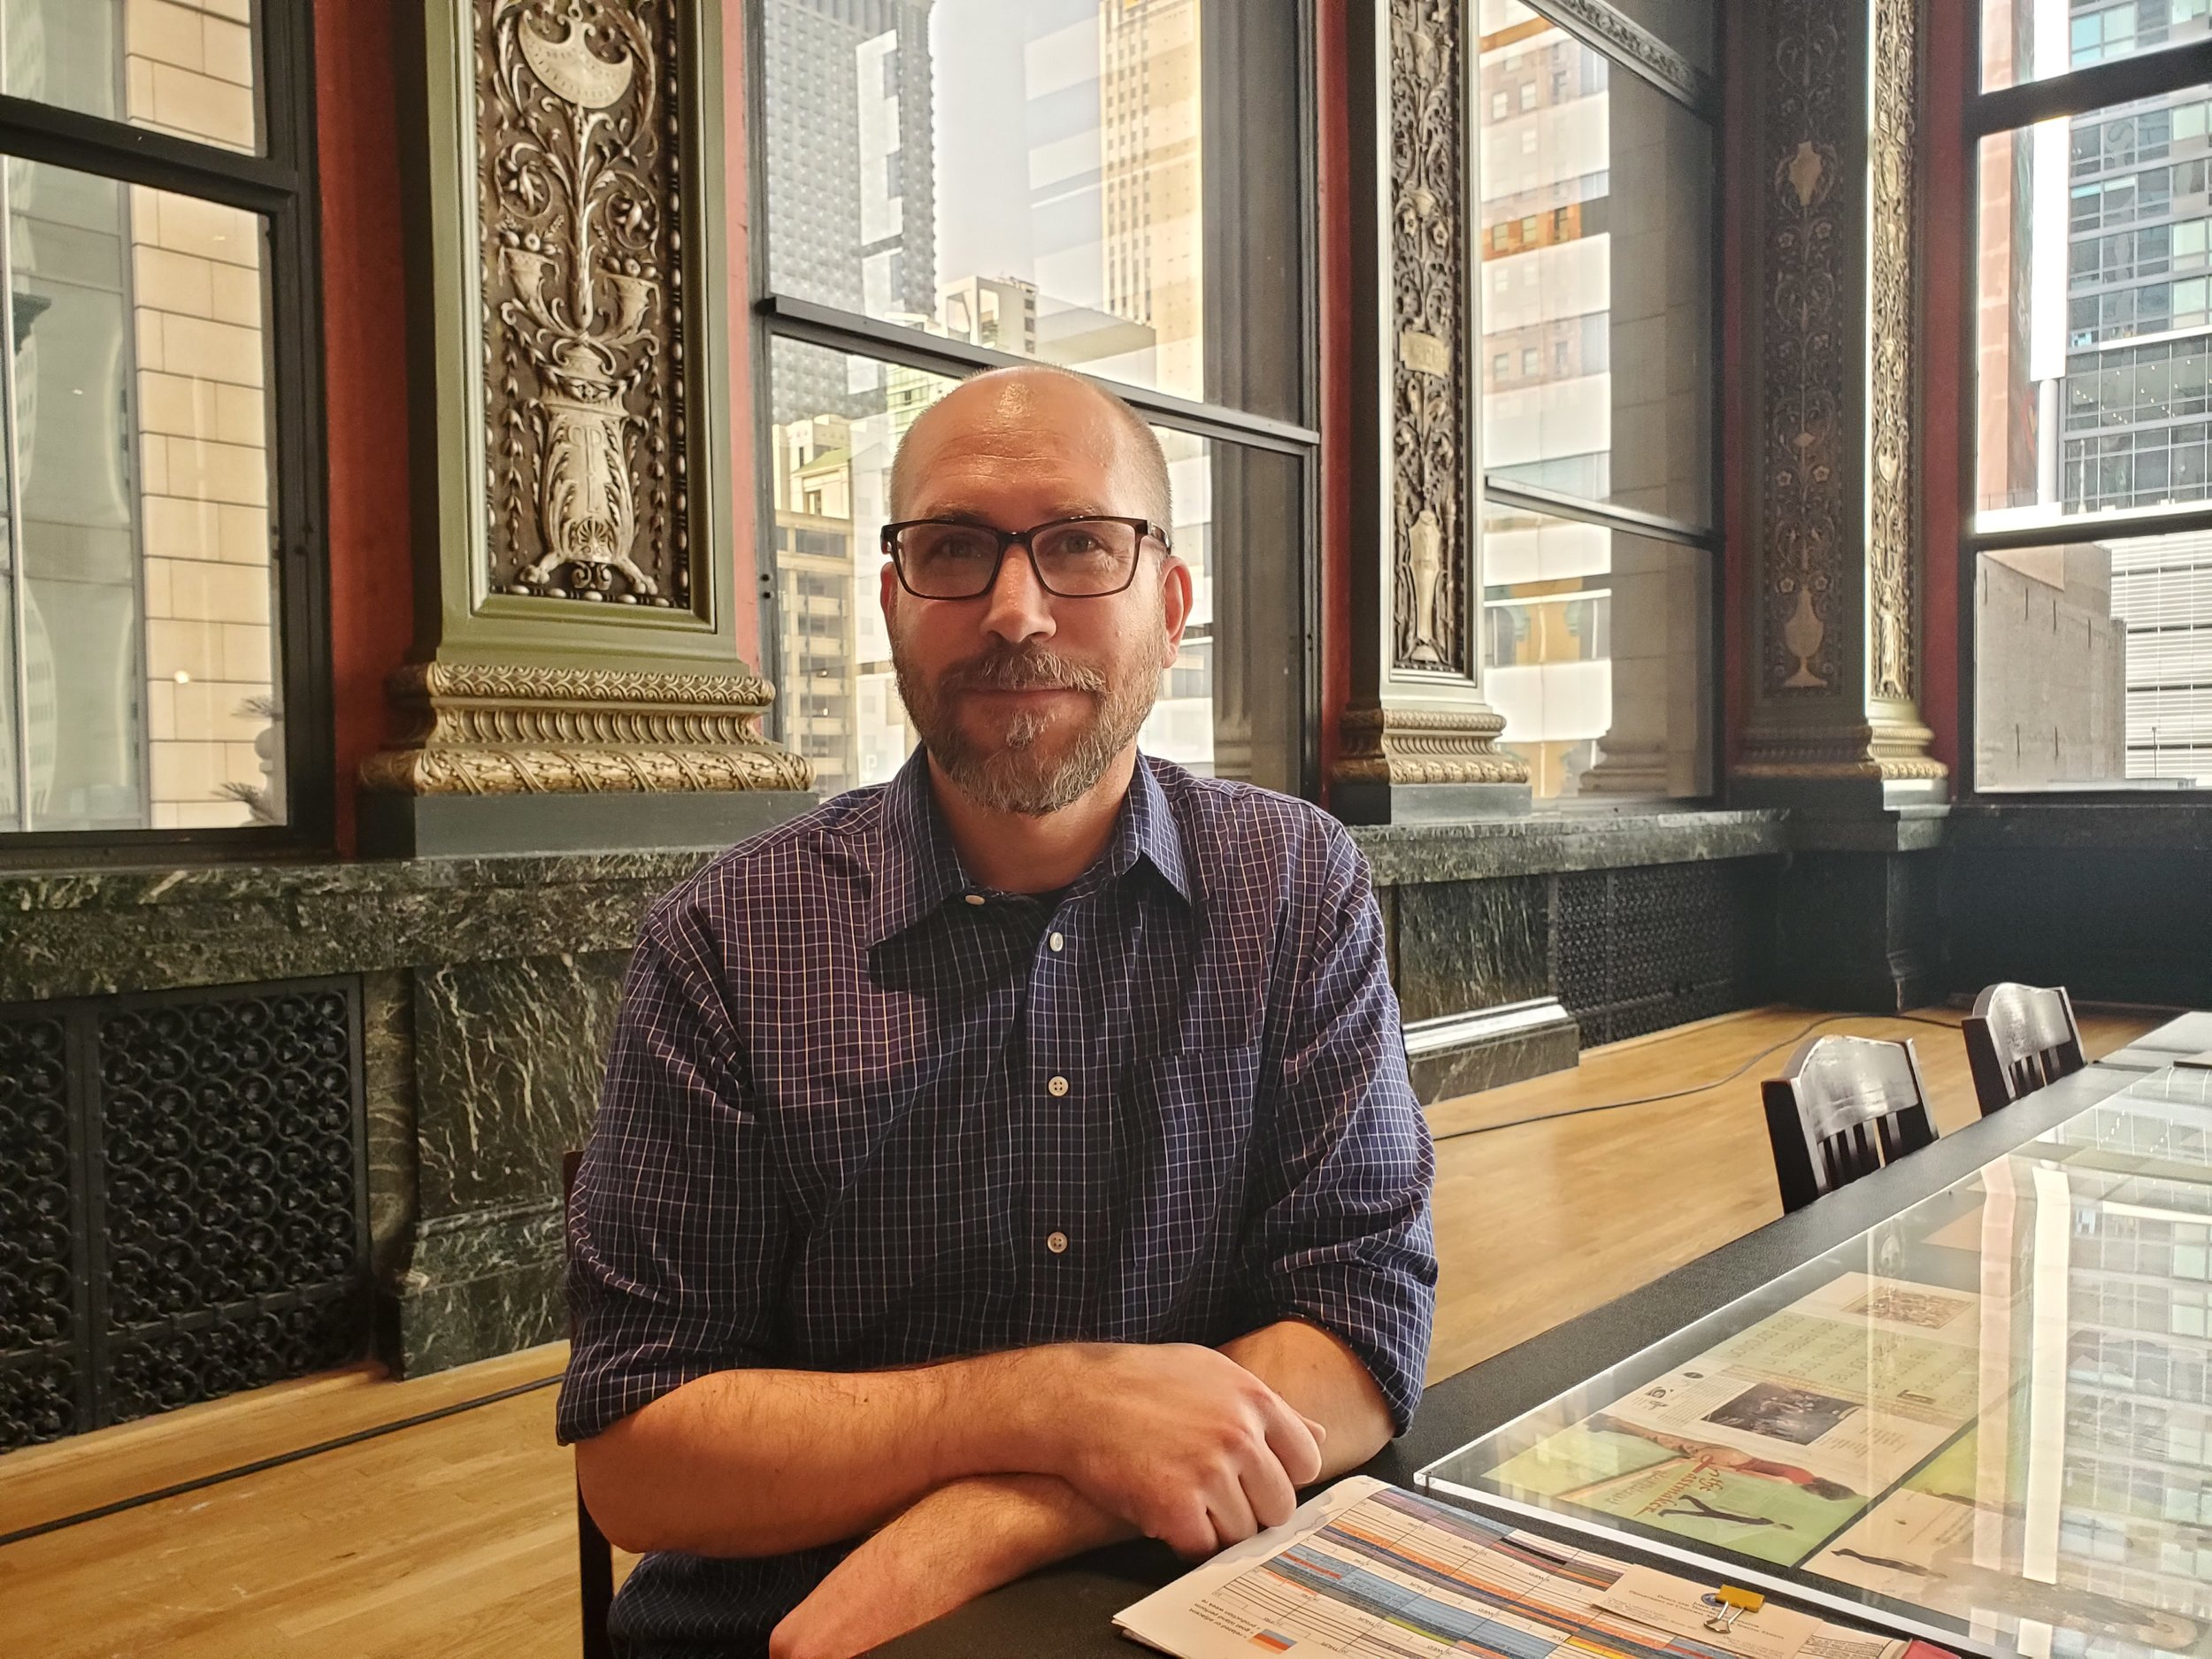 John Rich, DCASE dance & theater coordinator and co-curator of Goat Island Archive